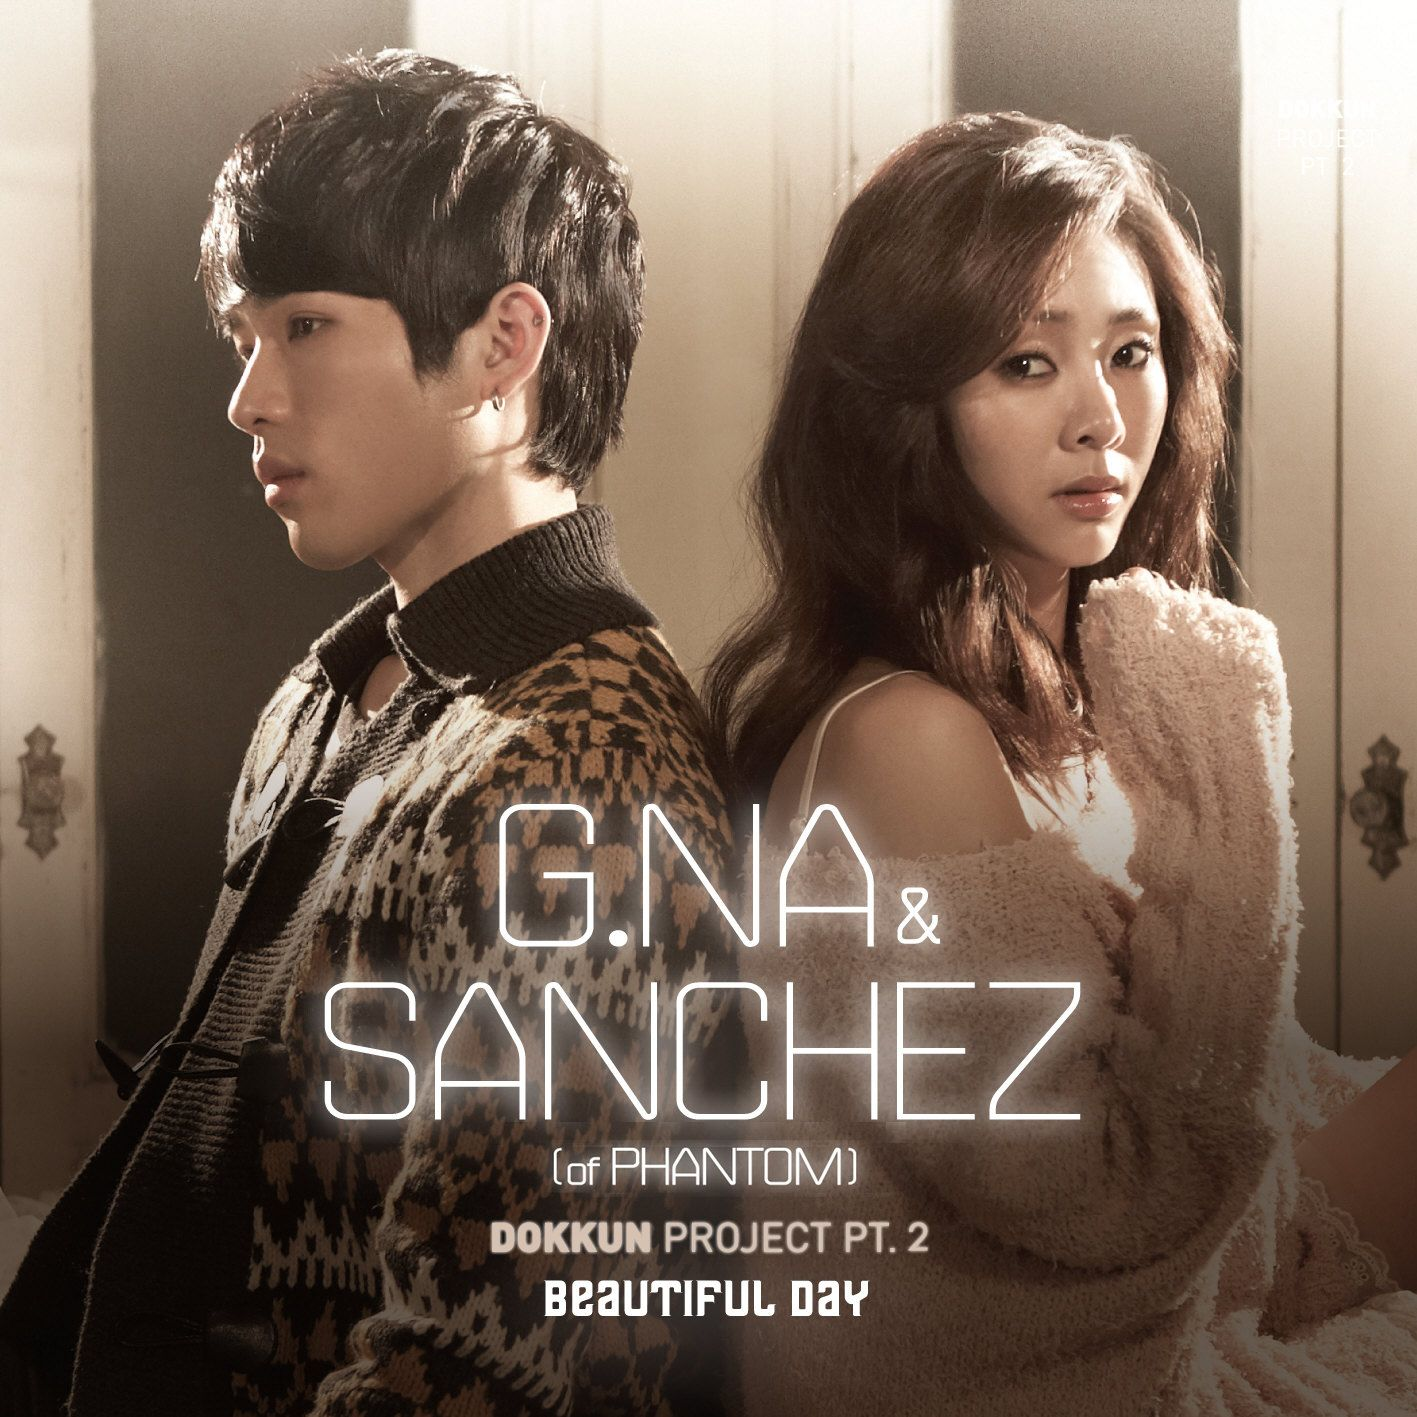 [Single] G.NA & Sanchez - Beautiful Day (Dokkun Project Pt.2)